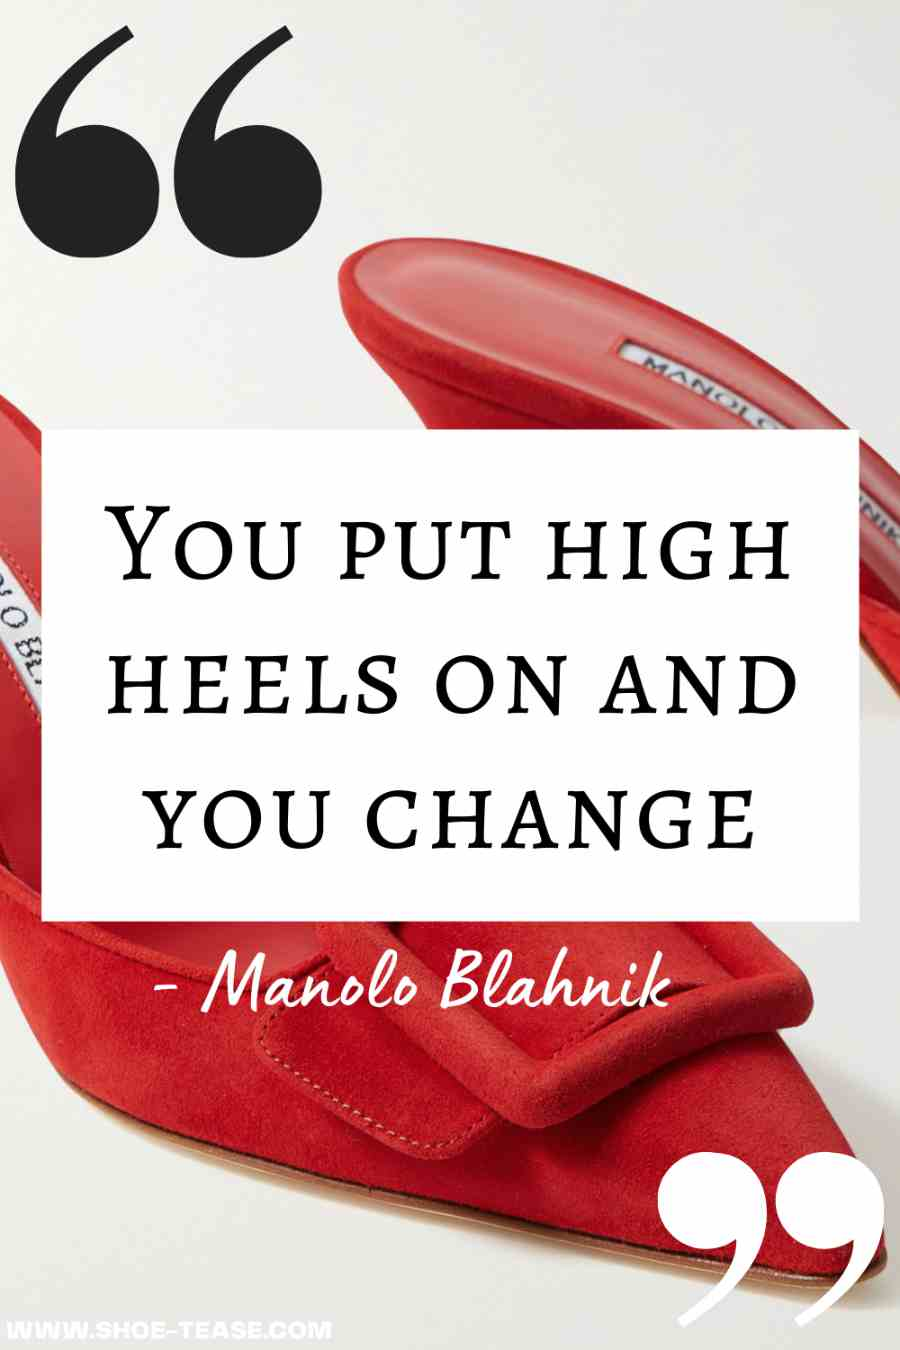 """Black high heels quote text in box """" You put high heels on and you change - Manolo Blahnik"""" over image of red suede Manolo heeled slides."""